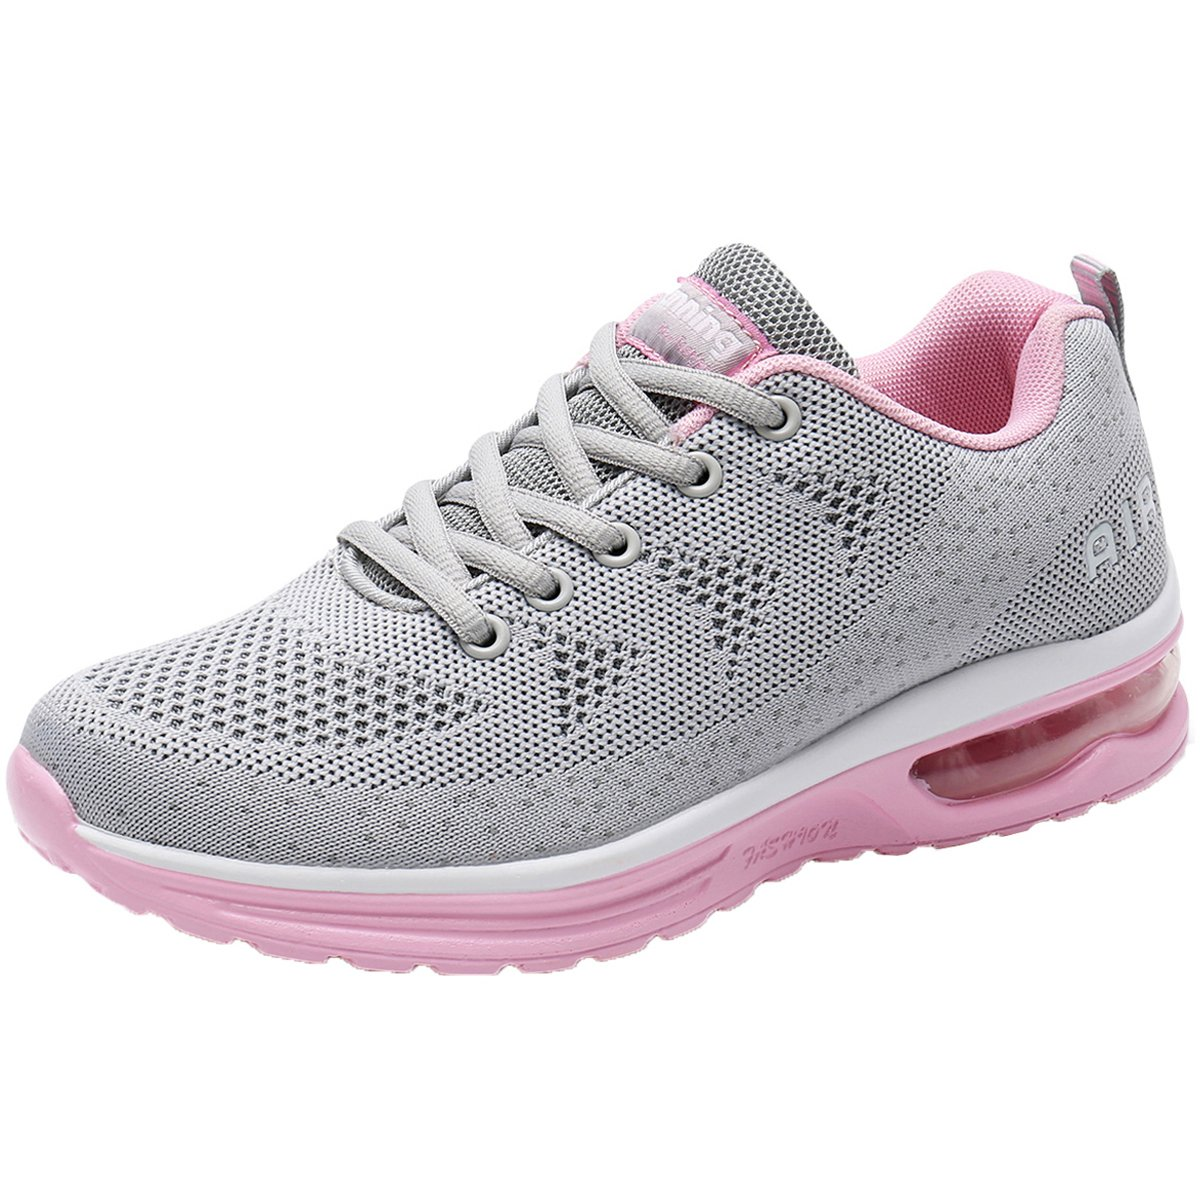 JARLIF Women's Lightweight Athletic Running Shoes Breathable Sport Air Fitness Gym Jogging Sneakers US5.5-10 B07DCHJLL2 7.5 M US|Greypink